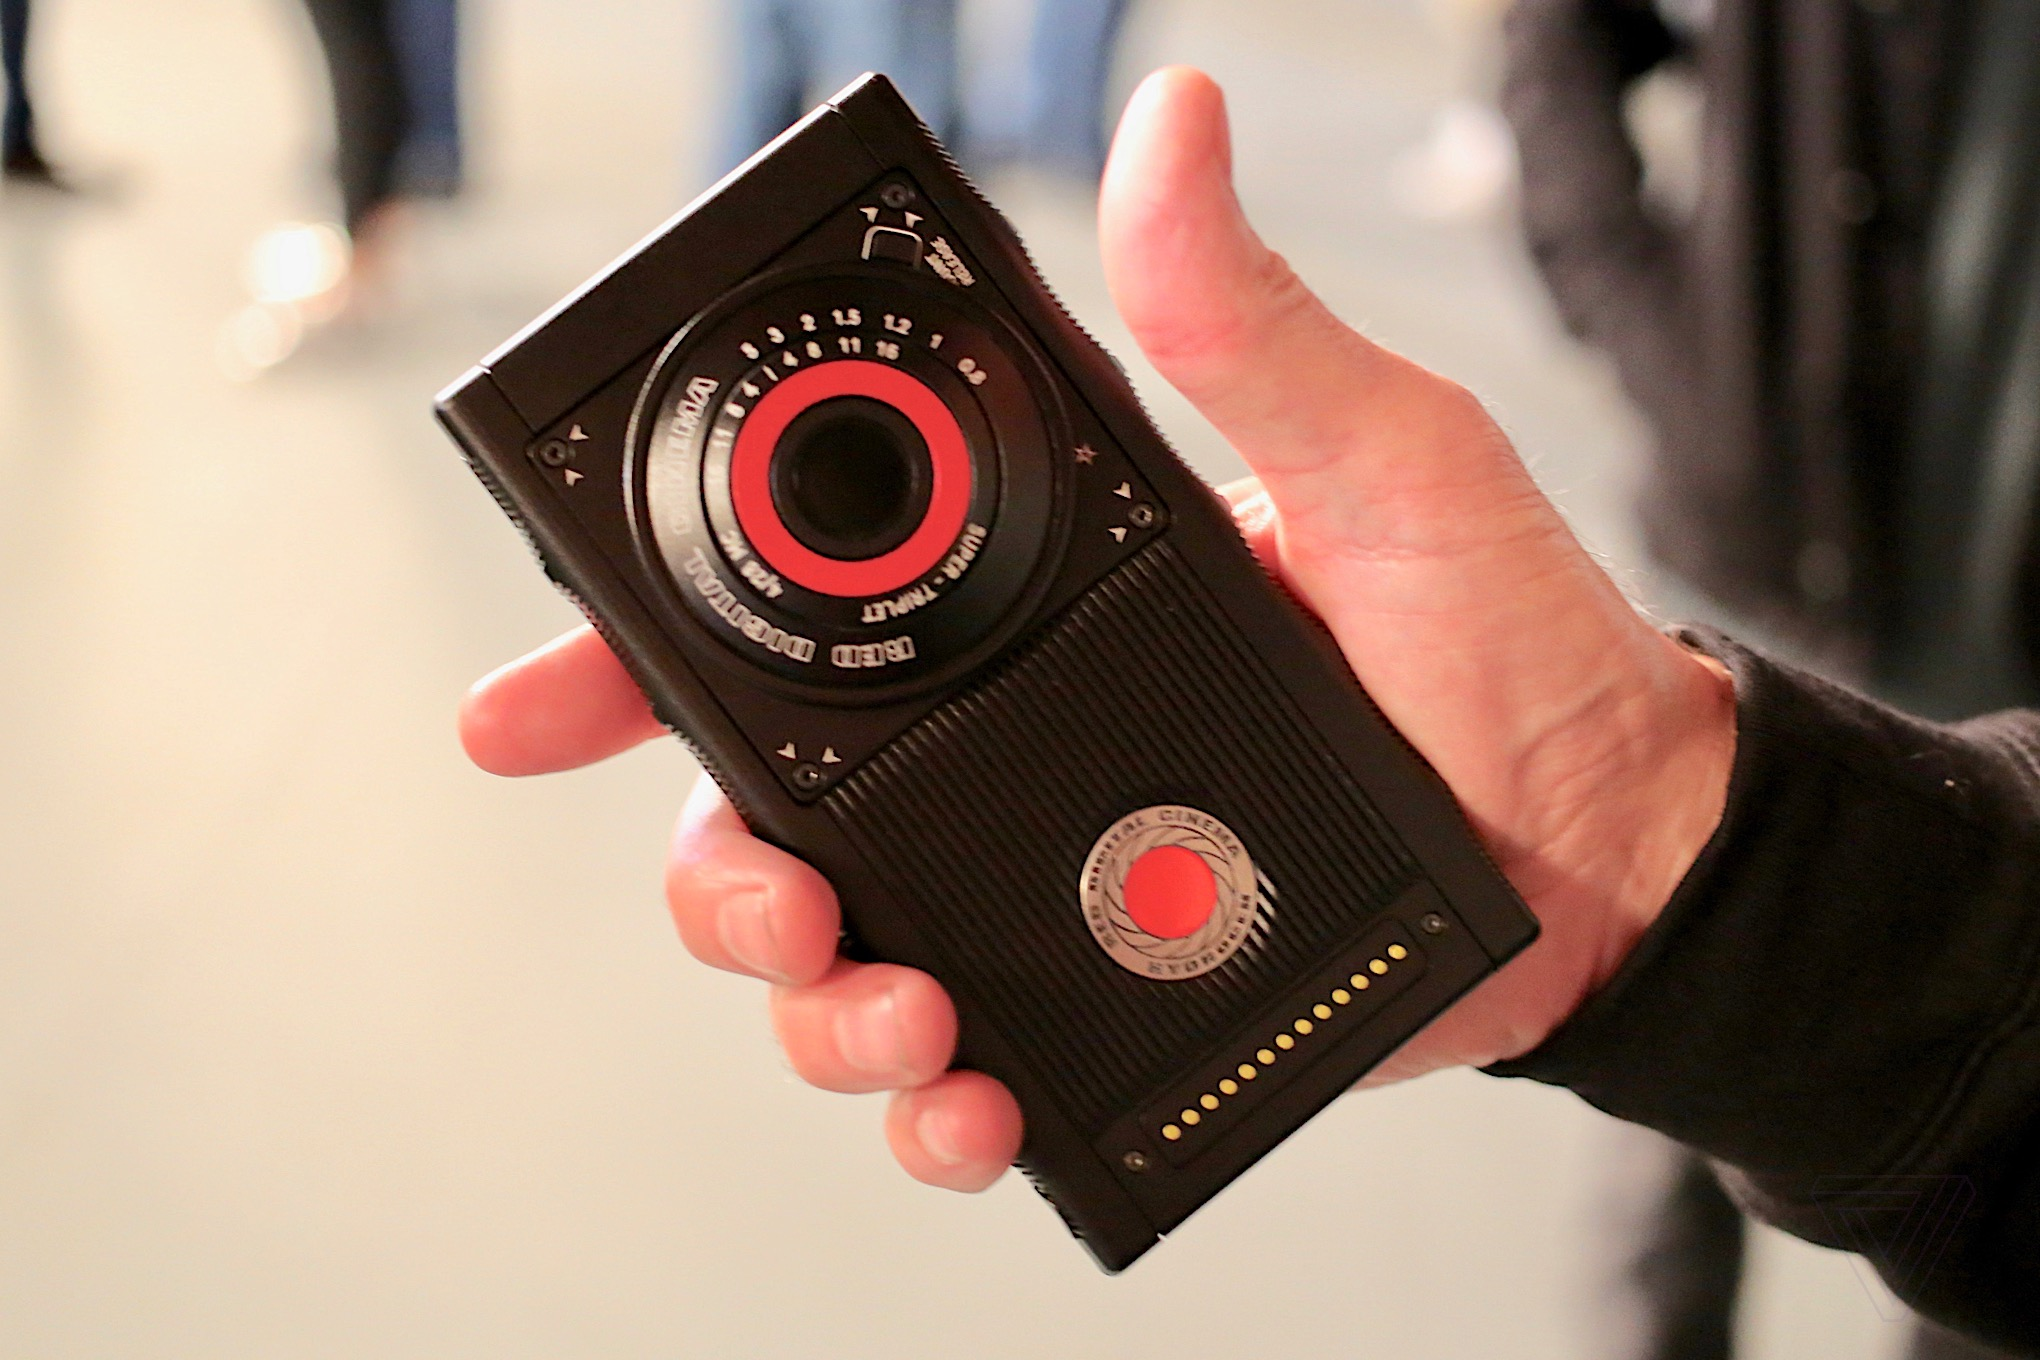 Hands On With The Red Hydrogen One A Wildly Ambitious Smartphone Faulty Circuit Breaker As Seen Via Thermal Imaging Proxima Verge